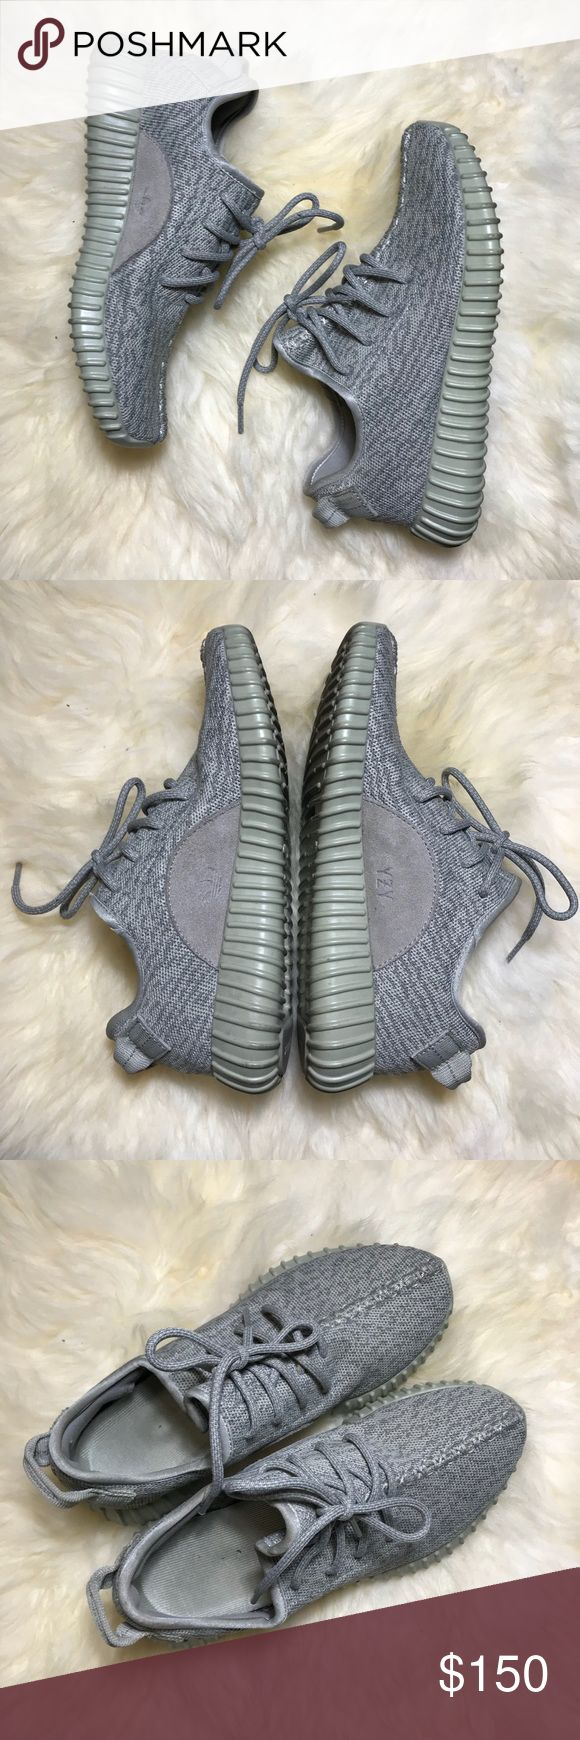 Moon rock yeezy sneakers adidas Adidas yeezy sneaker. Size 7.5 in women's. Worn only a handful of times still in great condition although name has worn out on the insole. Authentic purchased from a sneaker collector. Yeezy Shoes Sneakers